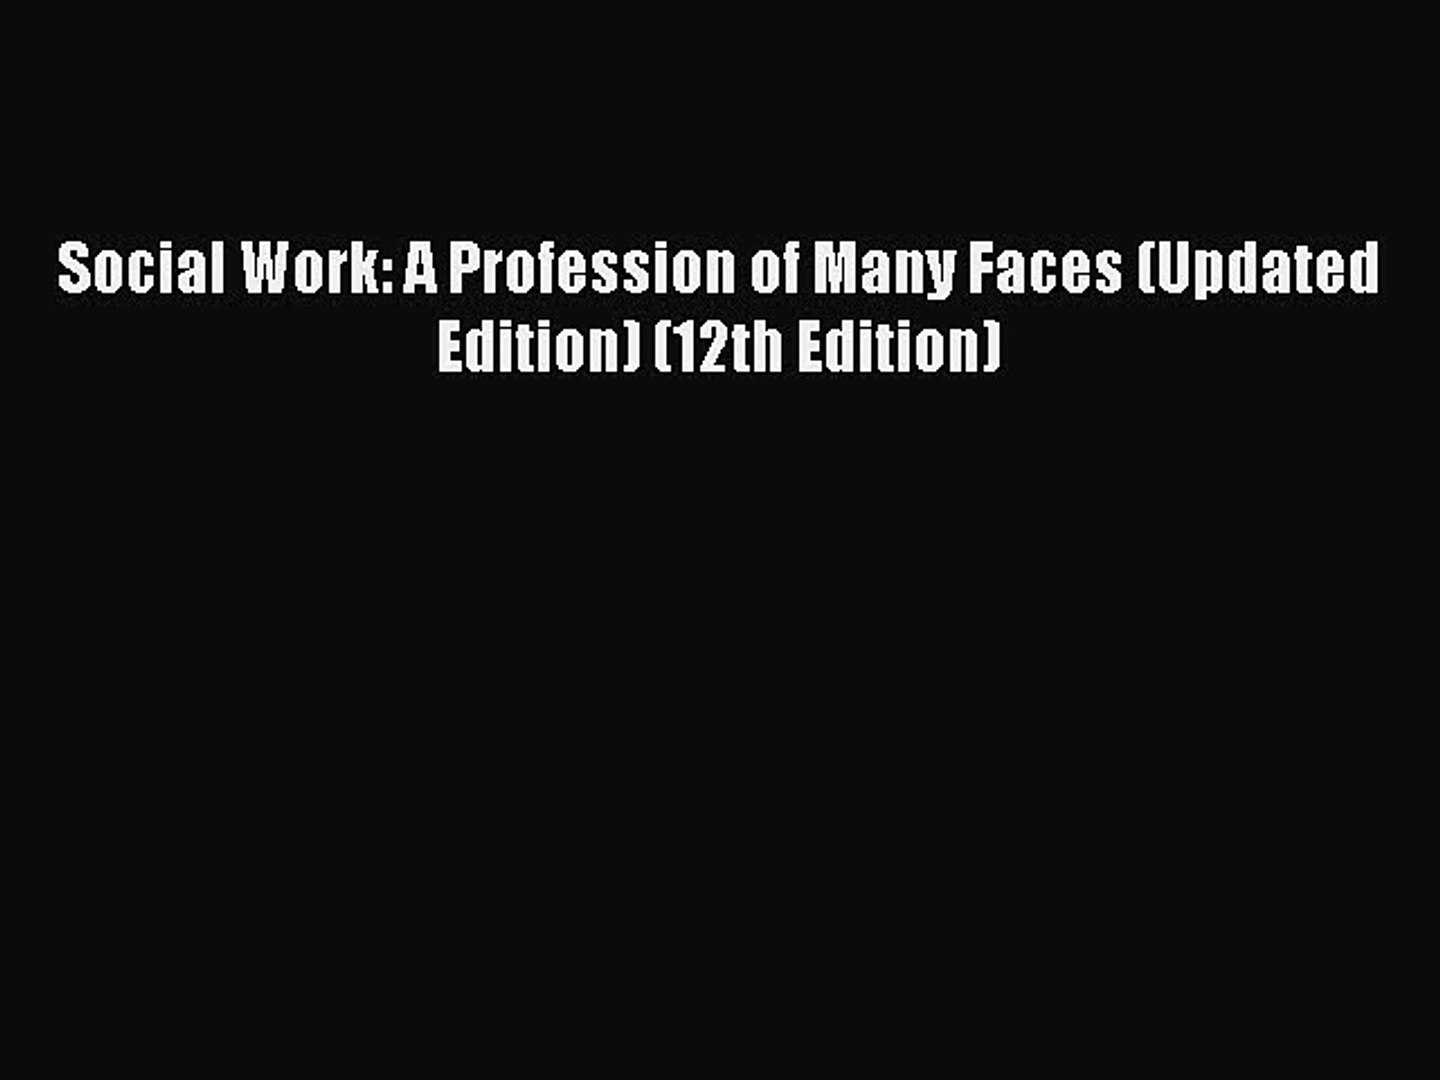 Download Social Work: A Profession of Many Faces (Updated Edition) (12th Edition) PDF Free